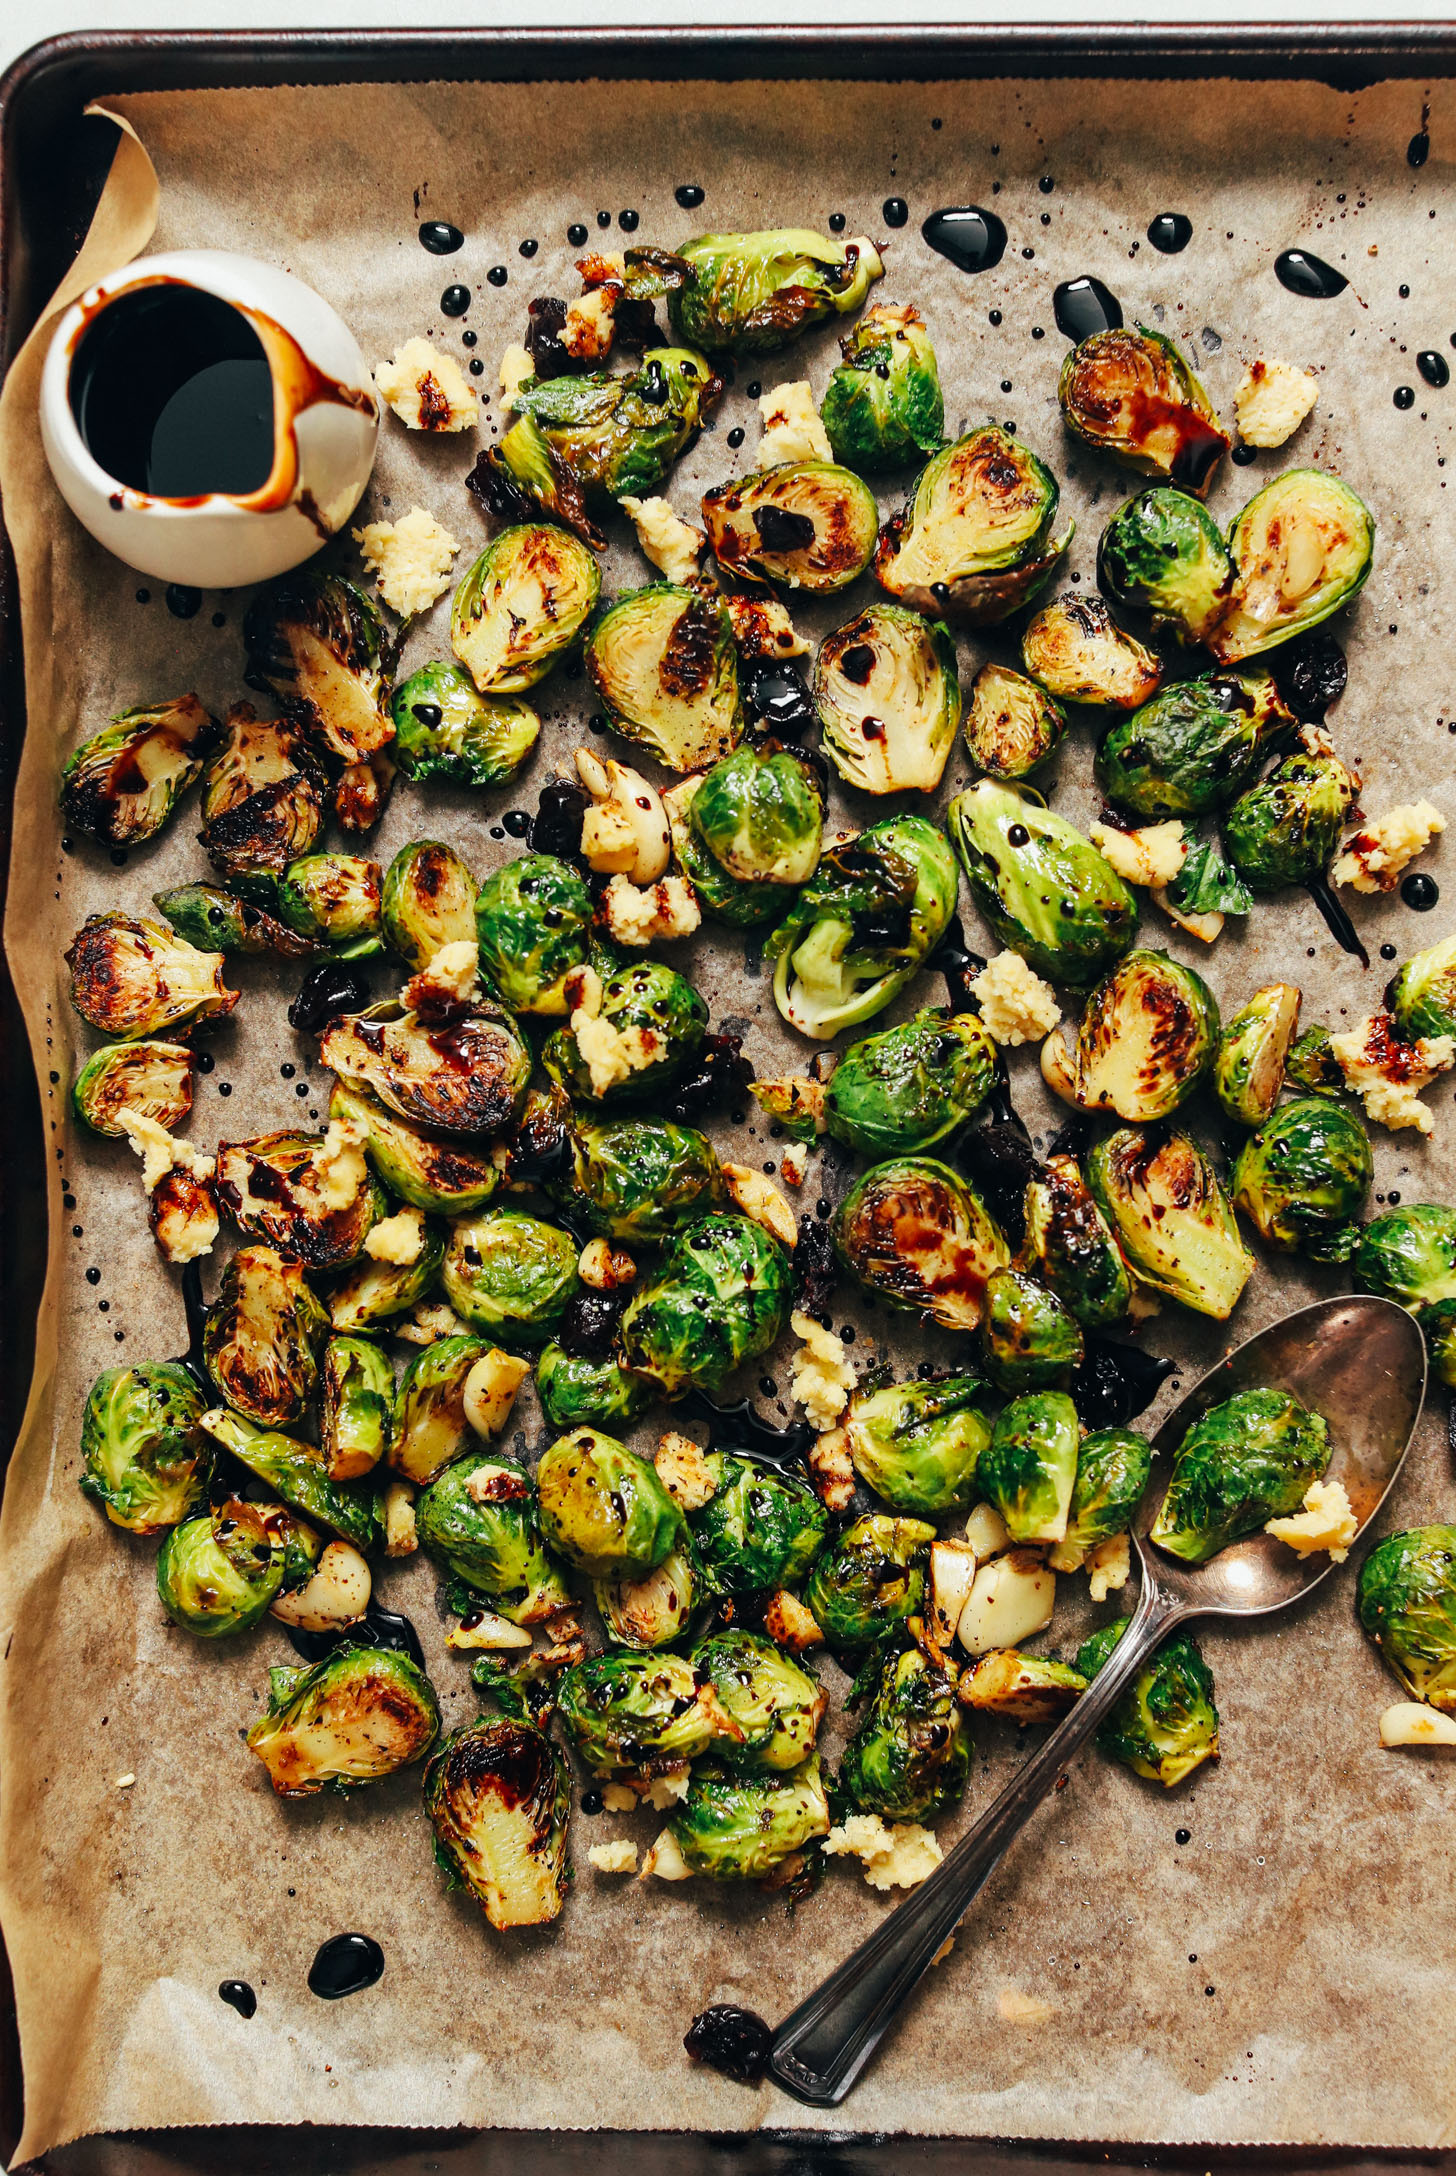 Baking sheet of roasted Brussels sprouts drizzled with balsamic reduction